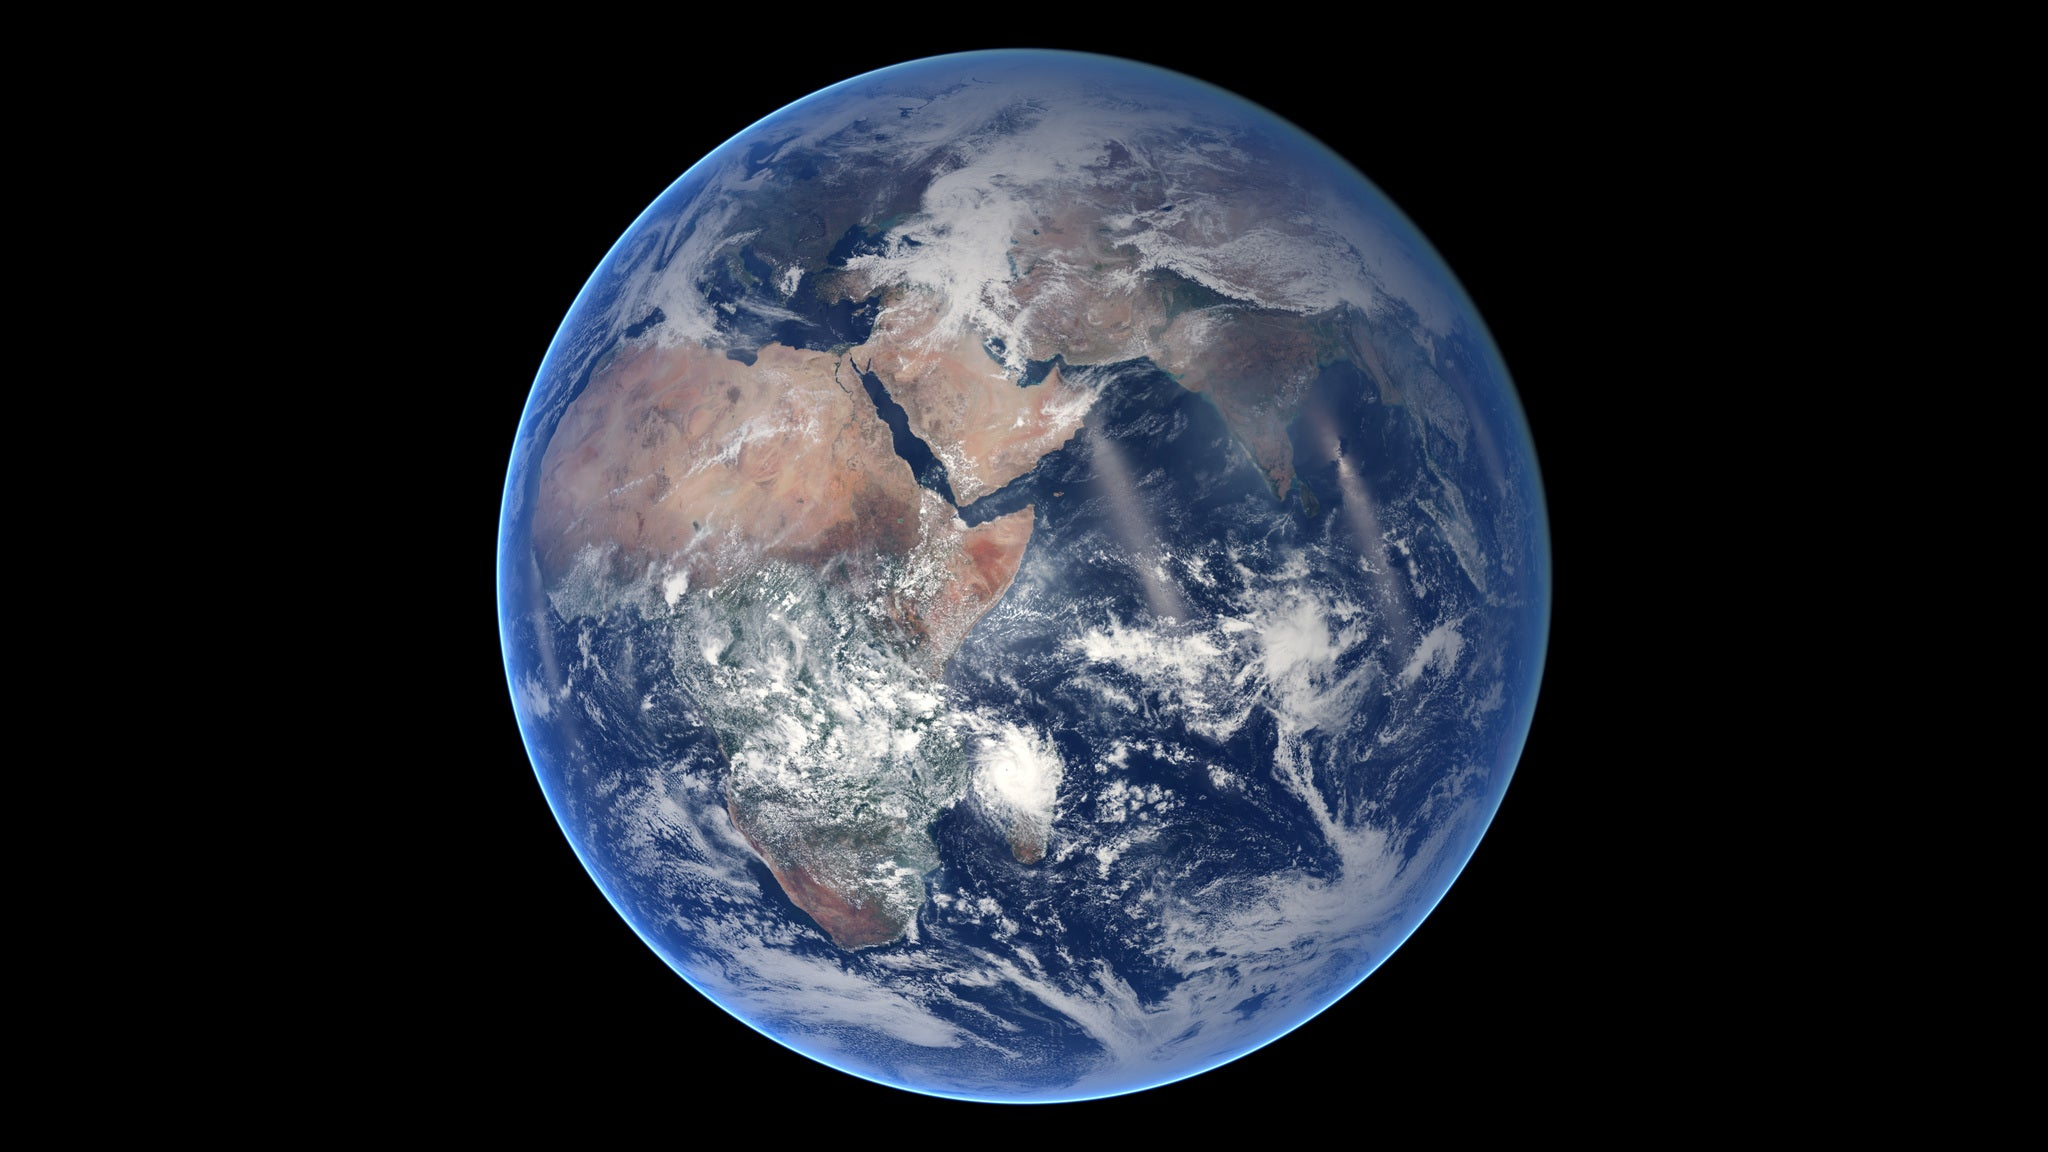 nasa blue marble - photo #16